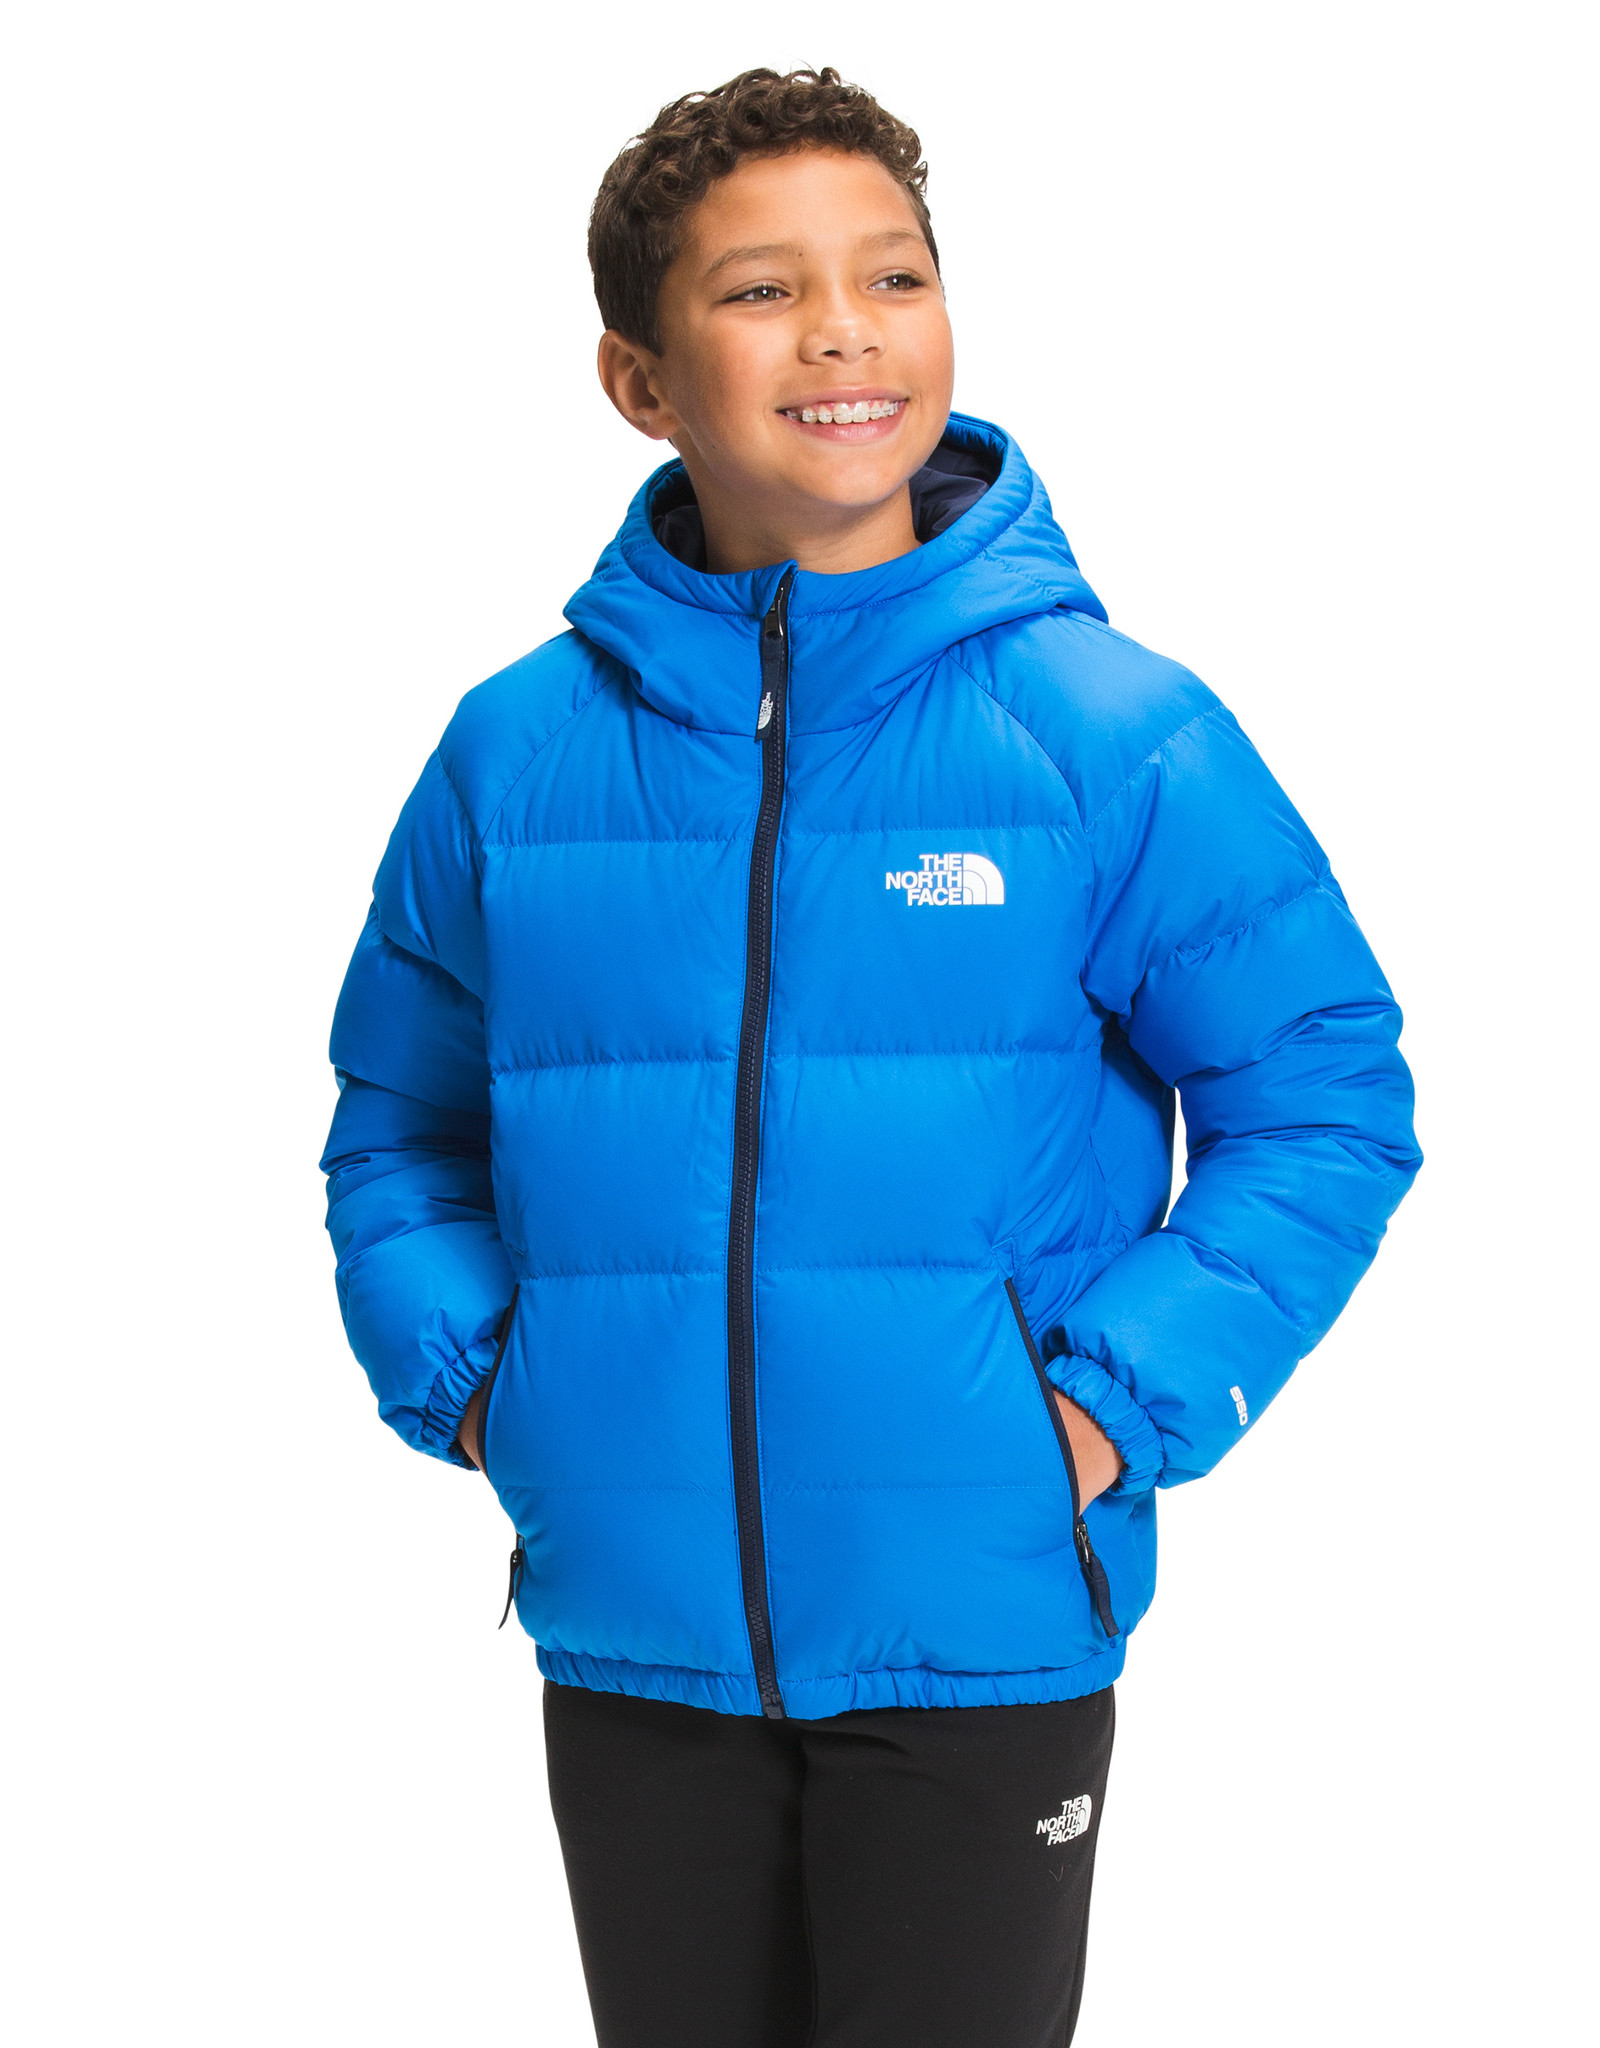 The North Face The North Face Boy's Hyalite Down Jacket -W2022